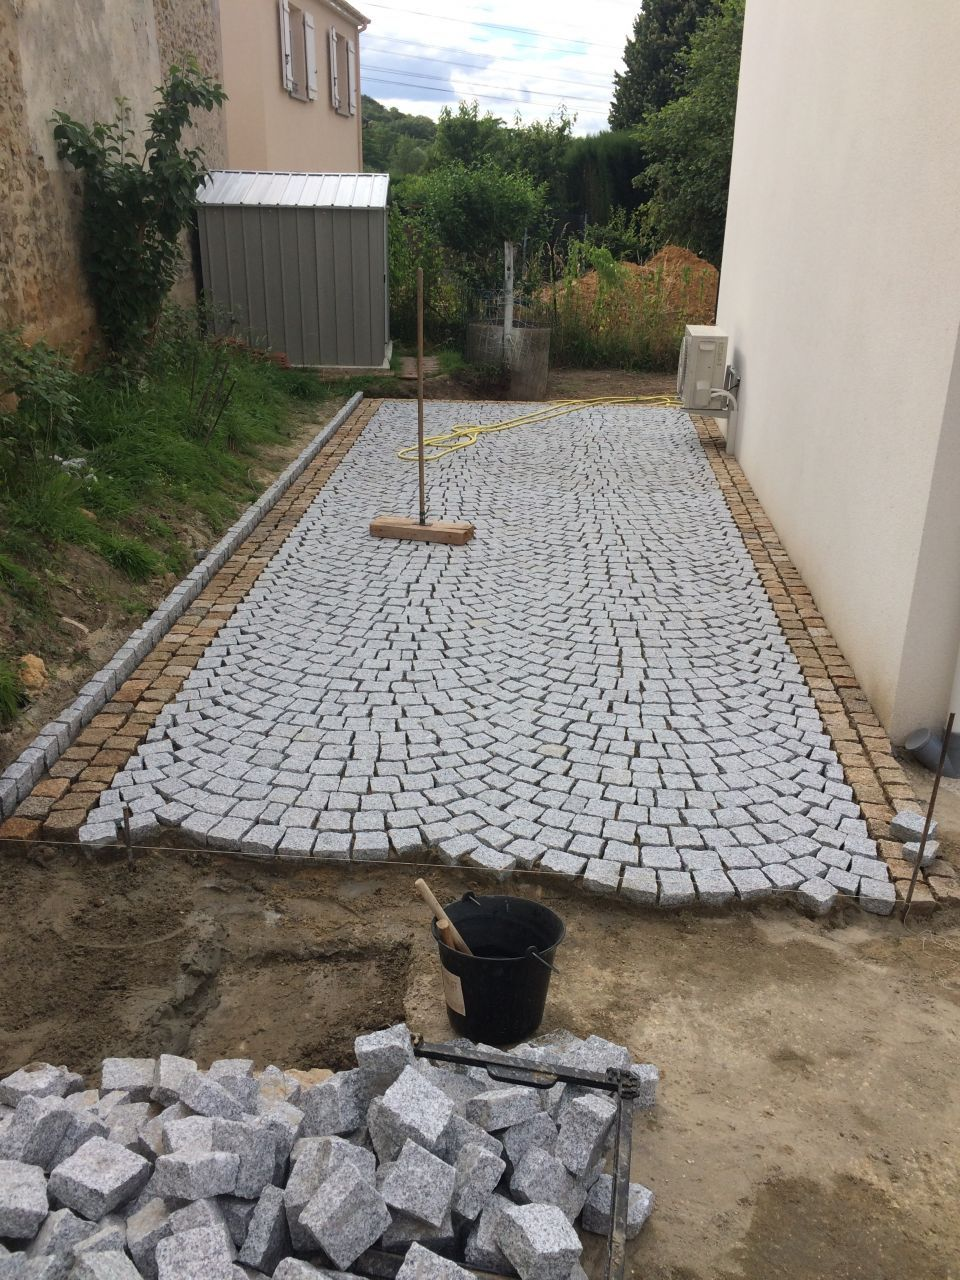 Pose de pav s en granit du portugal diy pinterest for Goudron sur carrelage